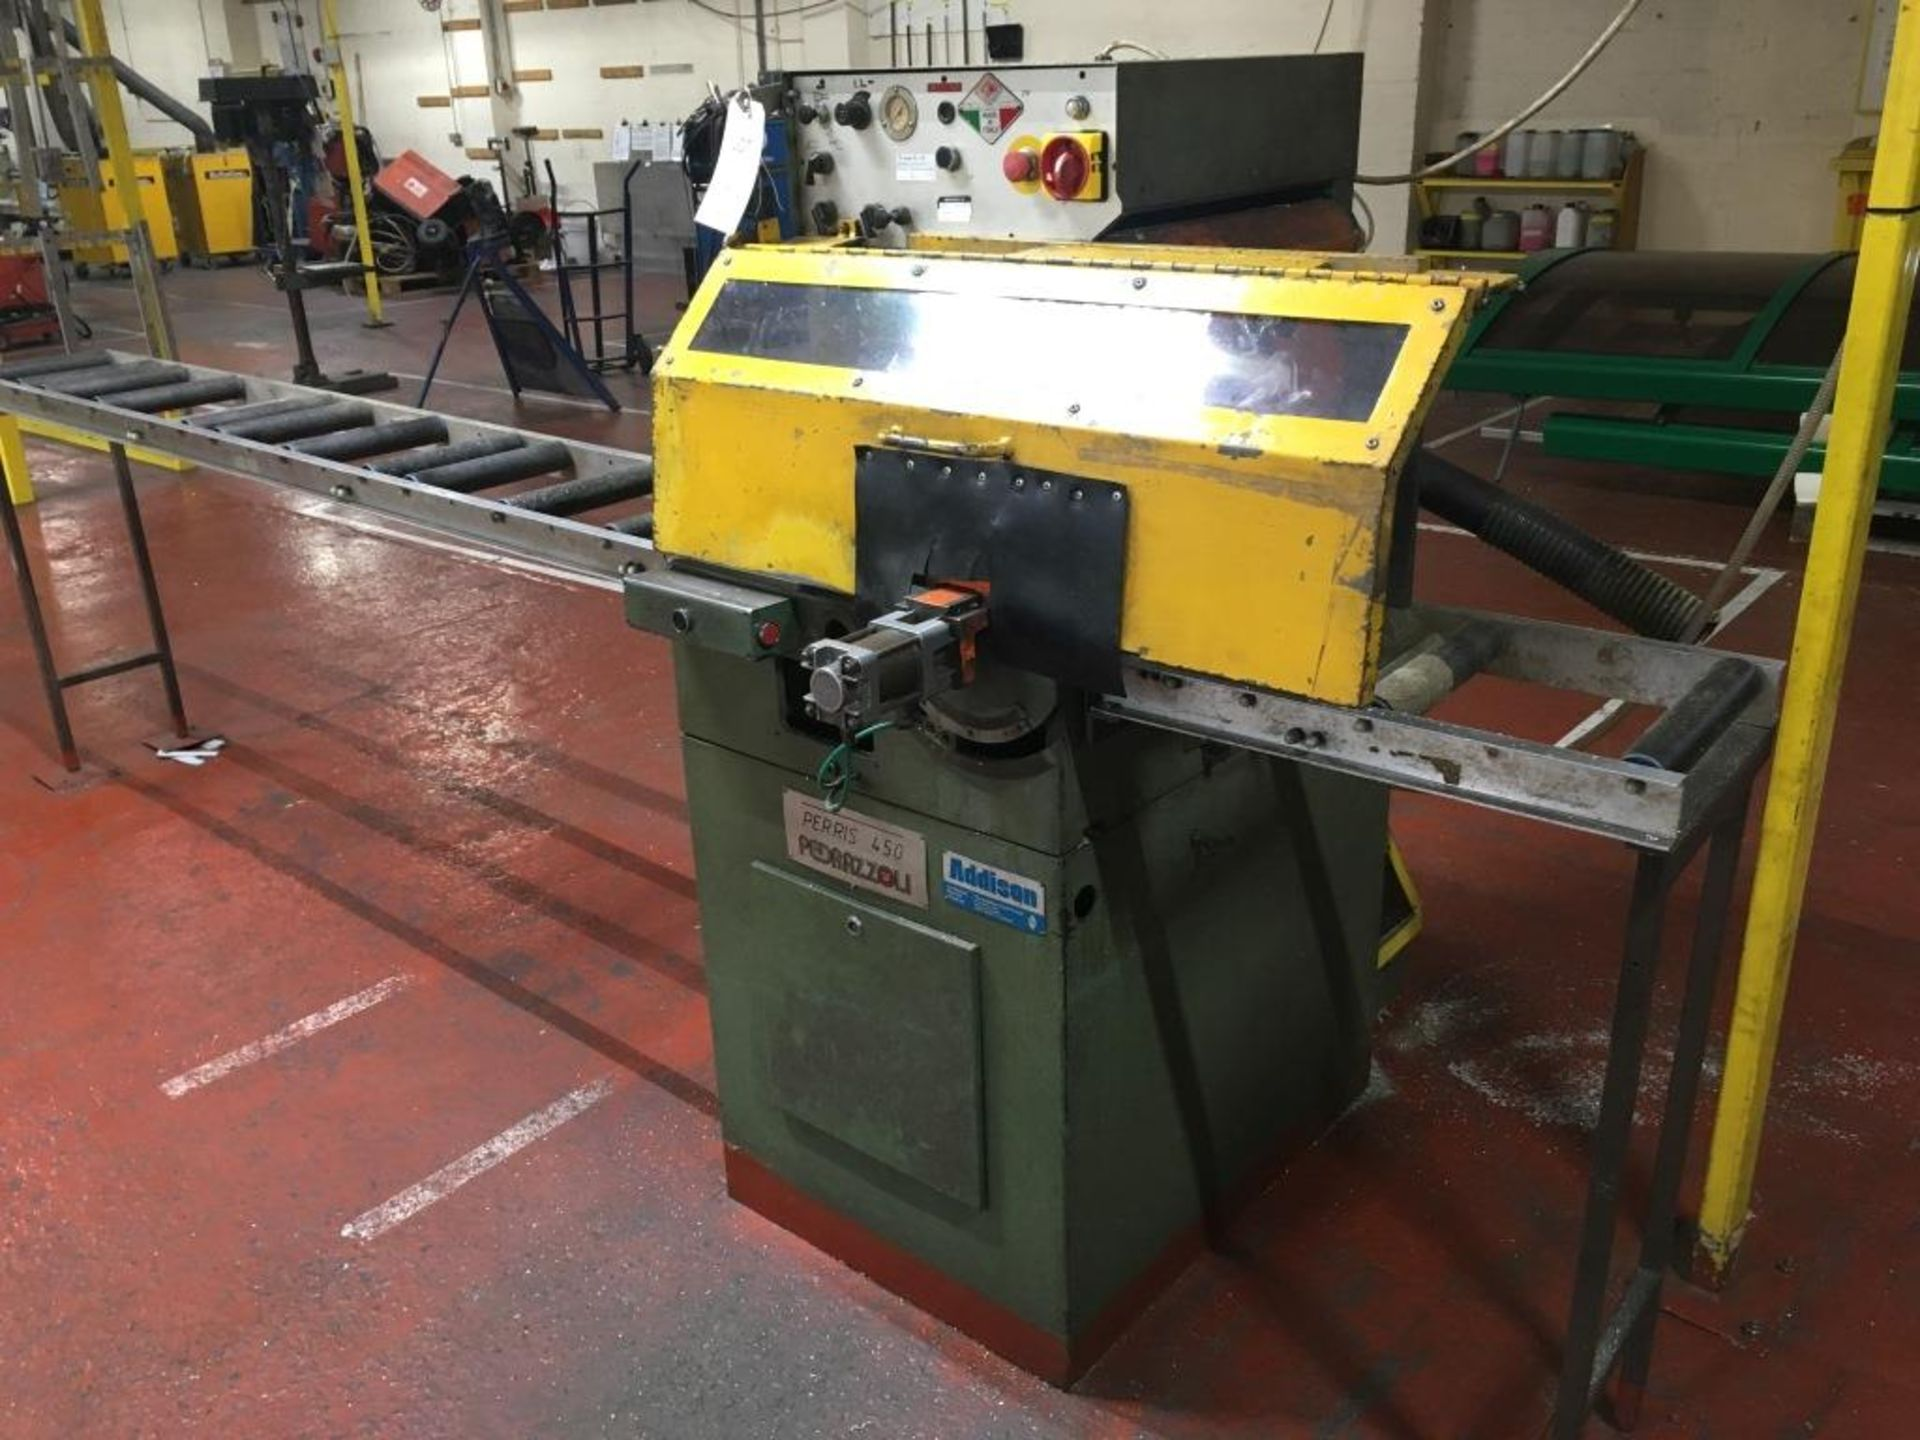 Lot 23 - Pedrazzoli Perns 450 rising blade cut off mitre saw, Serial No. M901210, with 2.5m roll feed. A work